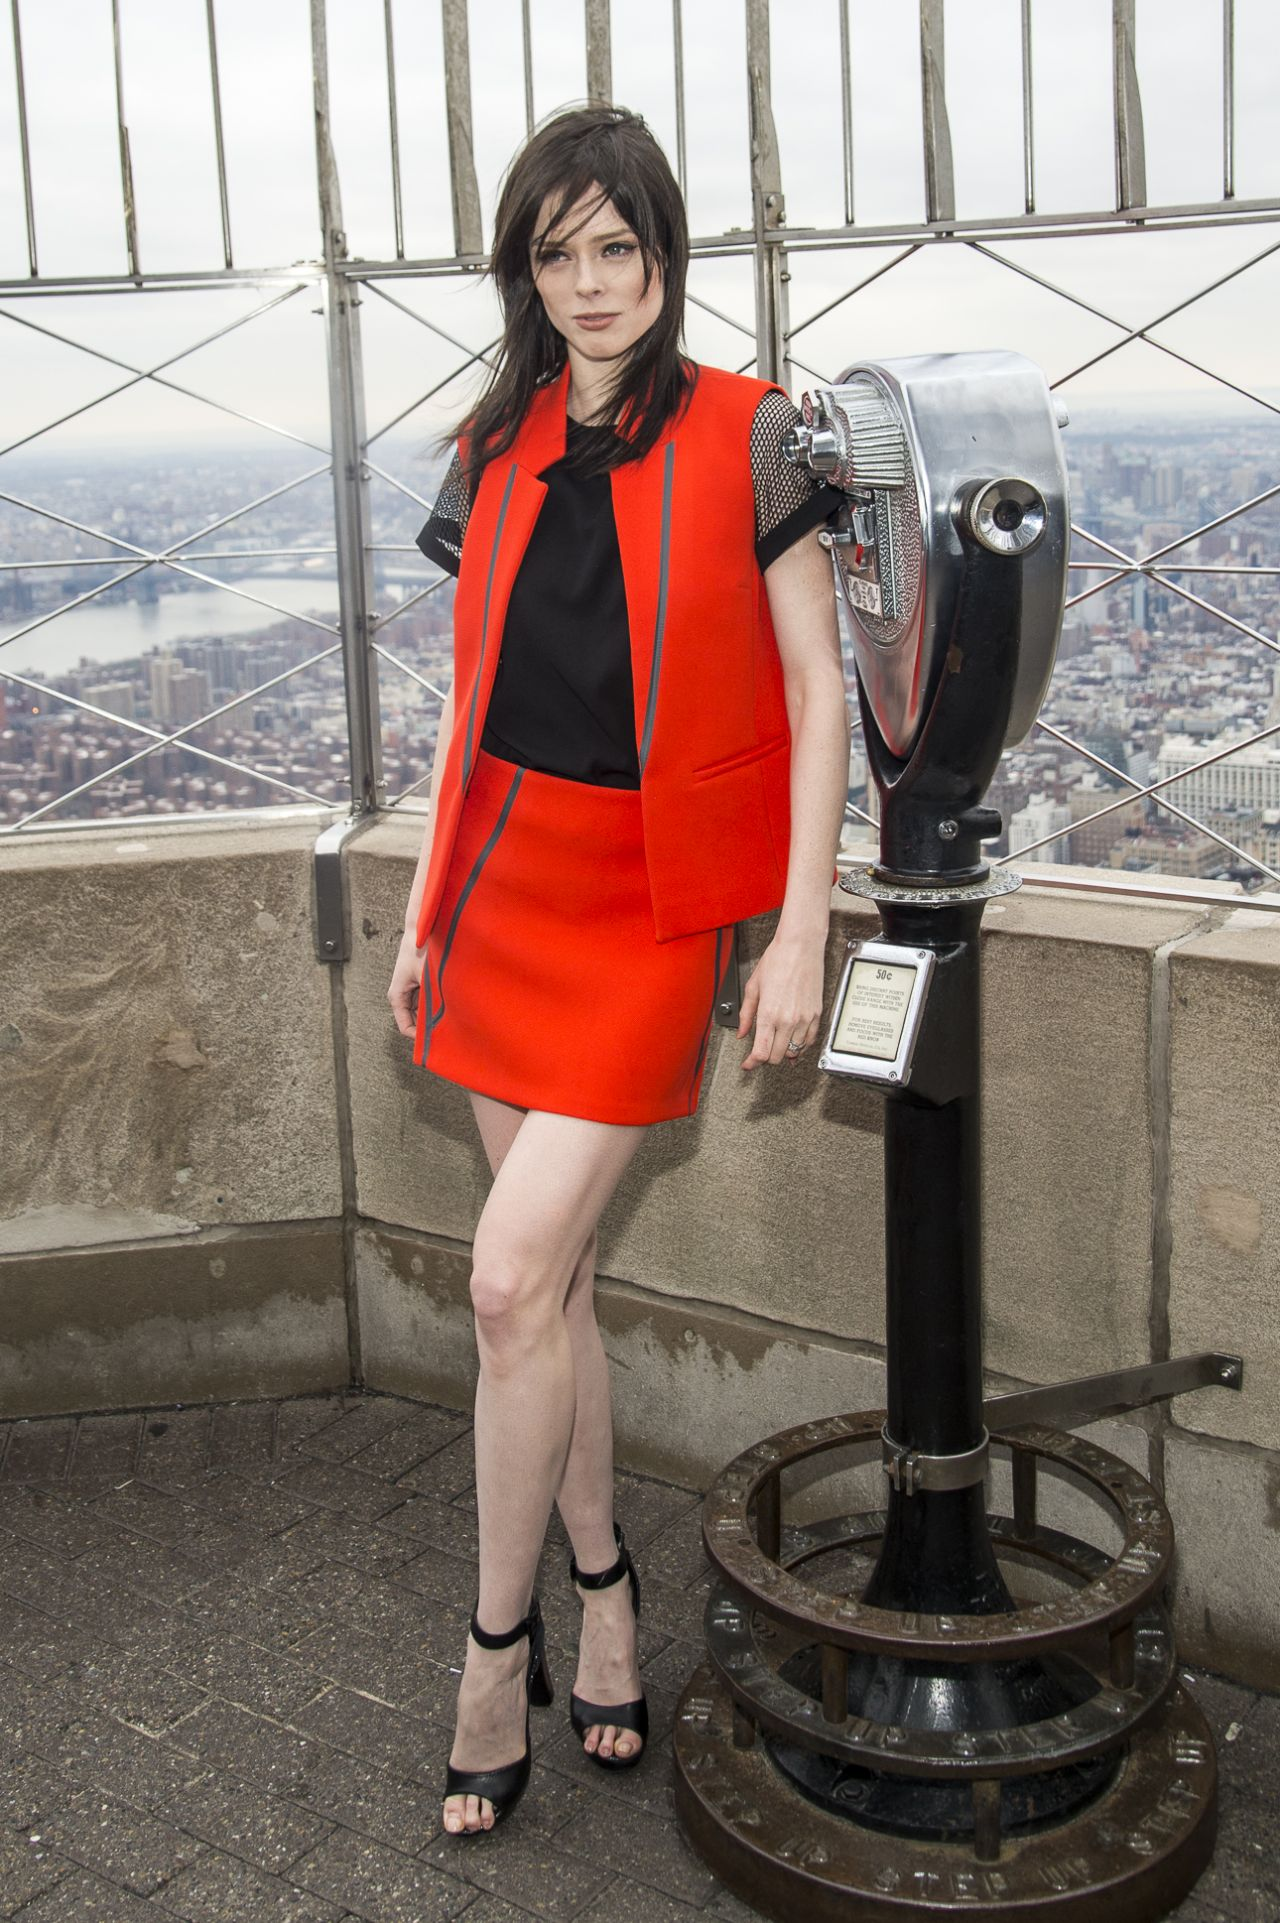 coco-rocha-empire-state-building-2-17-2016-5